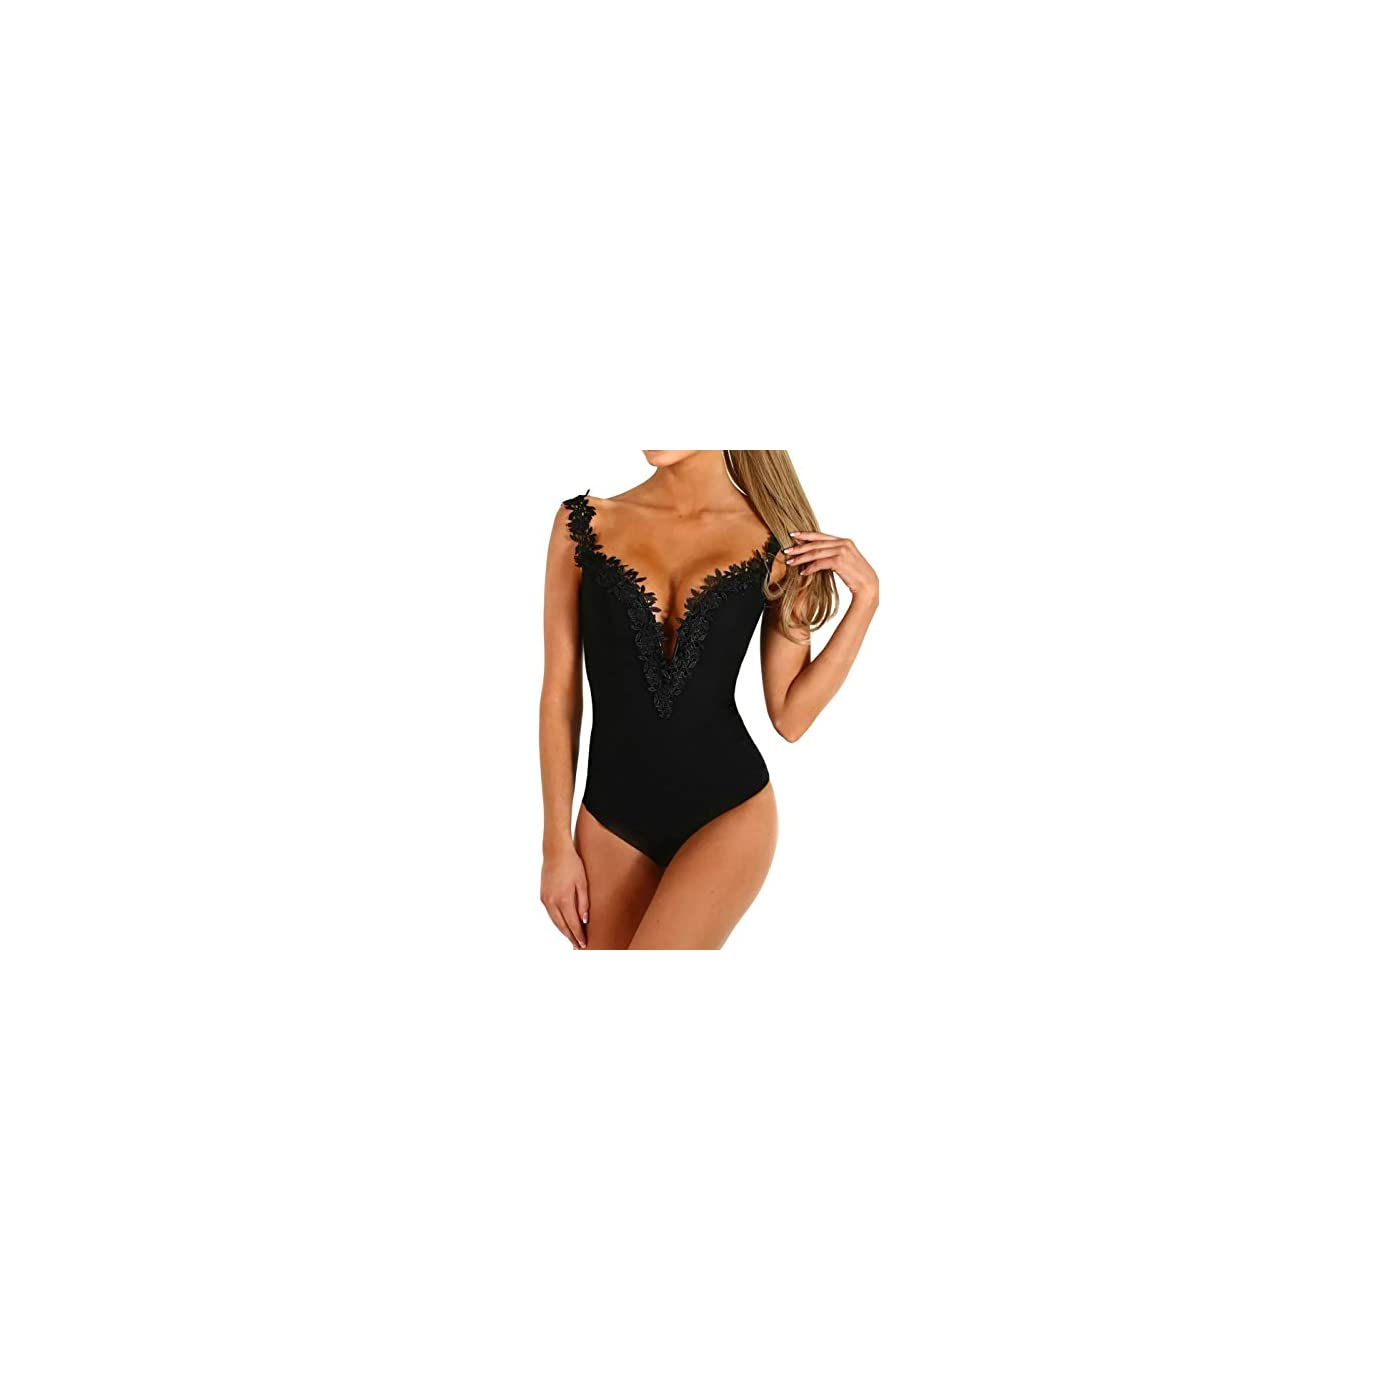 HUUSA Sexy Womens Black Mesh Unlined Mock Neck Corset Bodysuit 41GQhAUEOhL